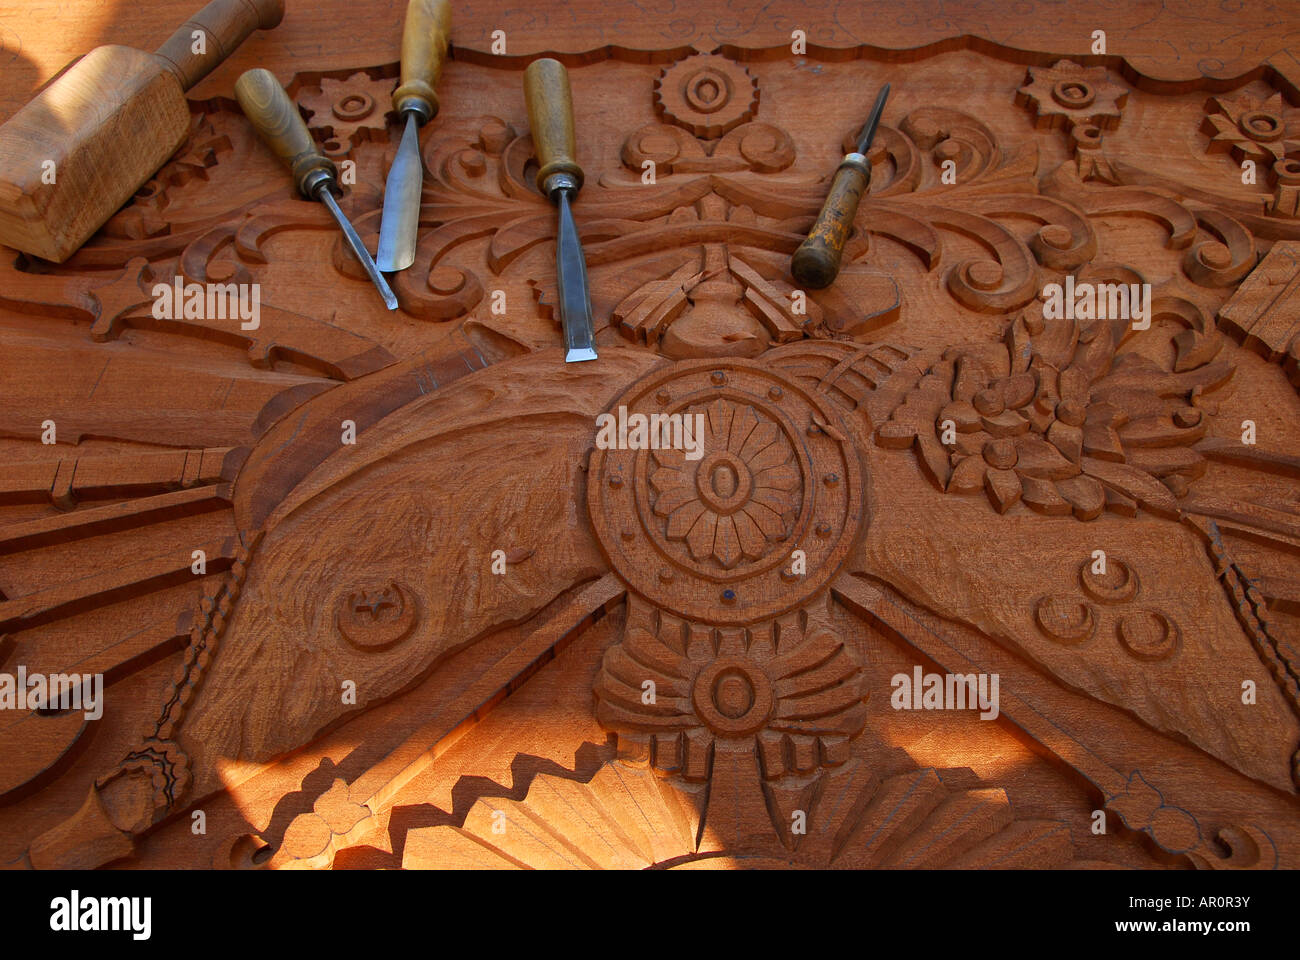 WOOD ENGRAVE AND TOOLS - Stock Image